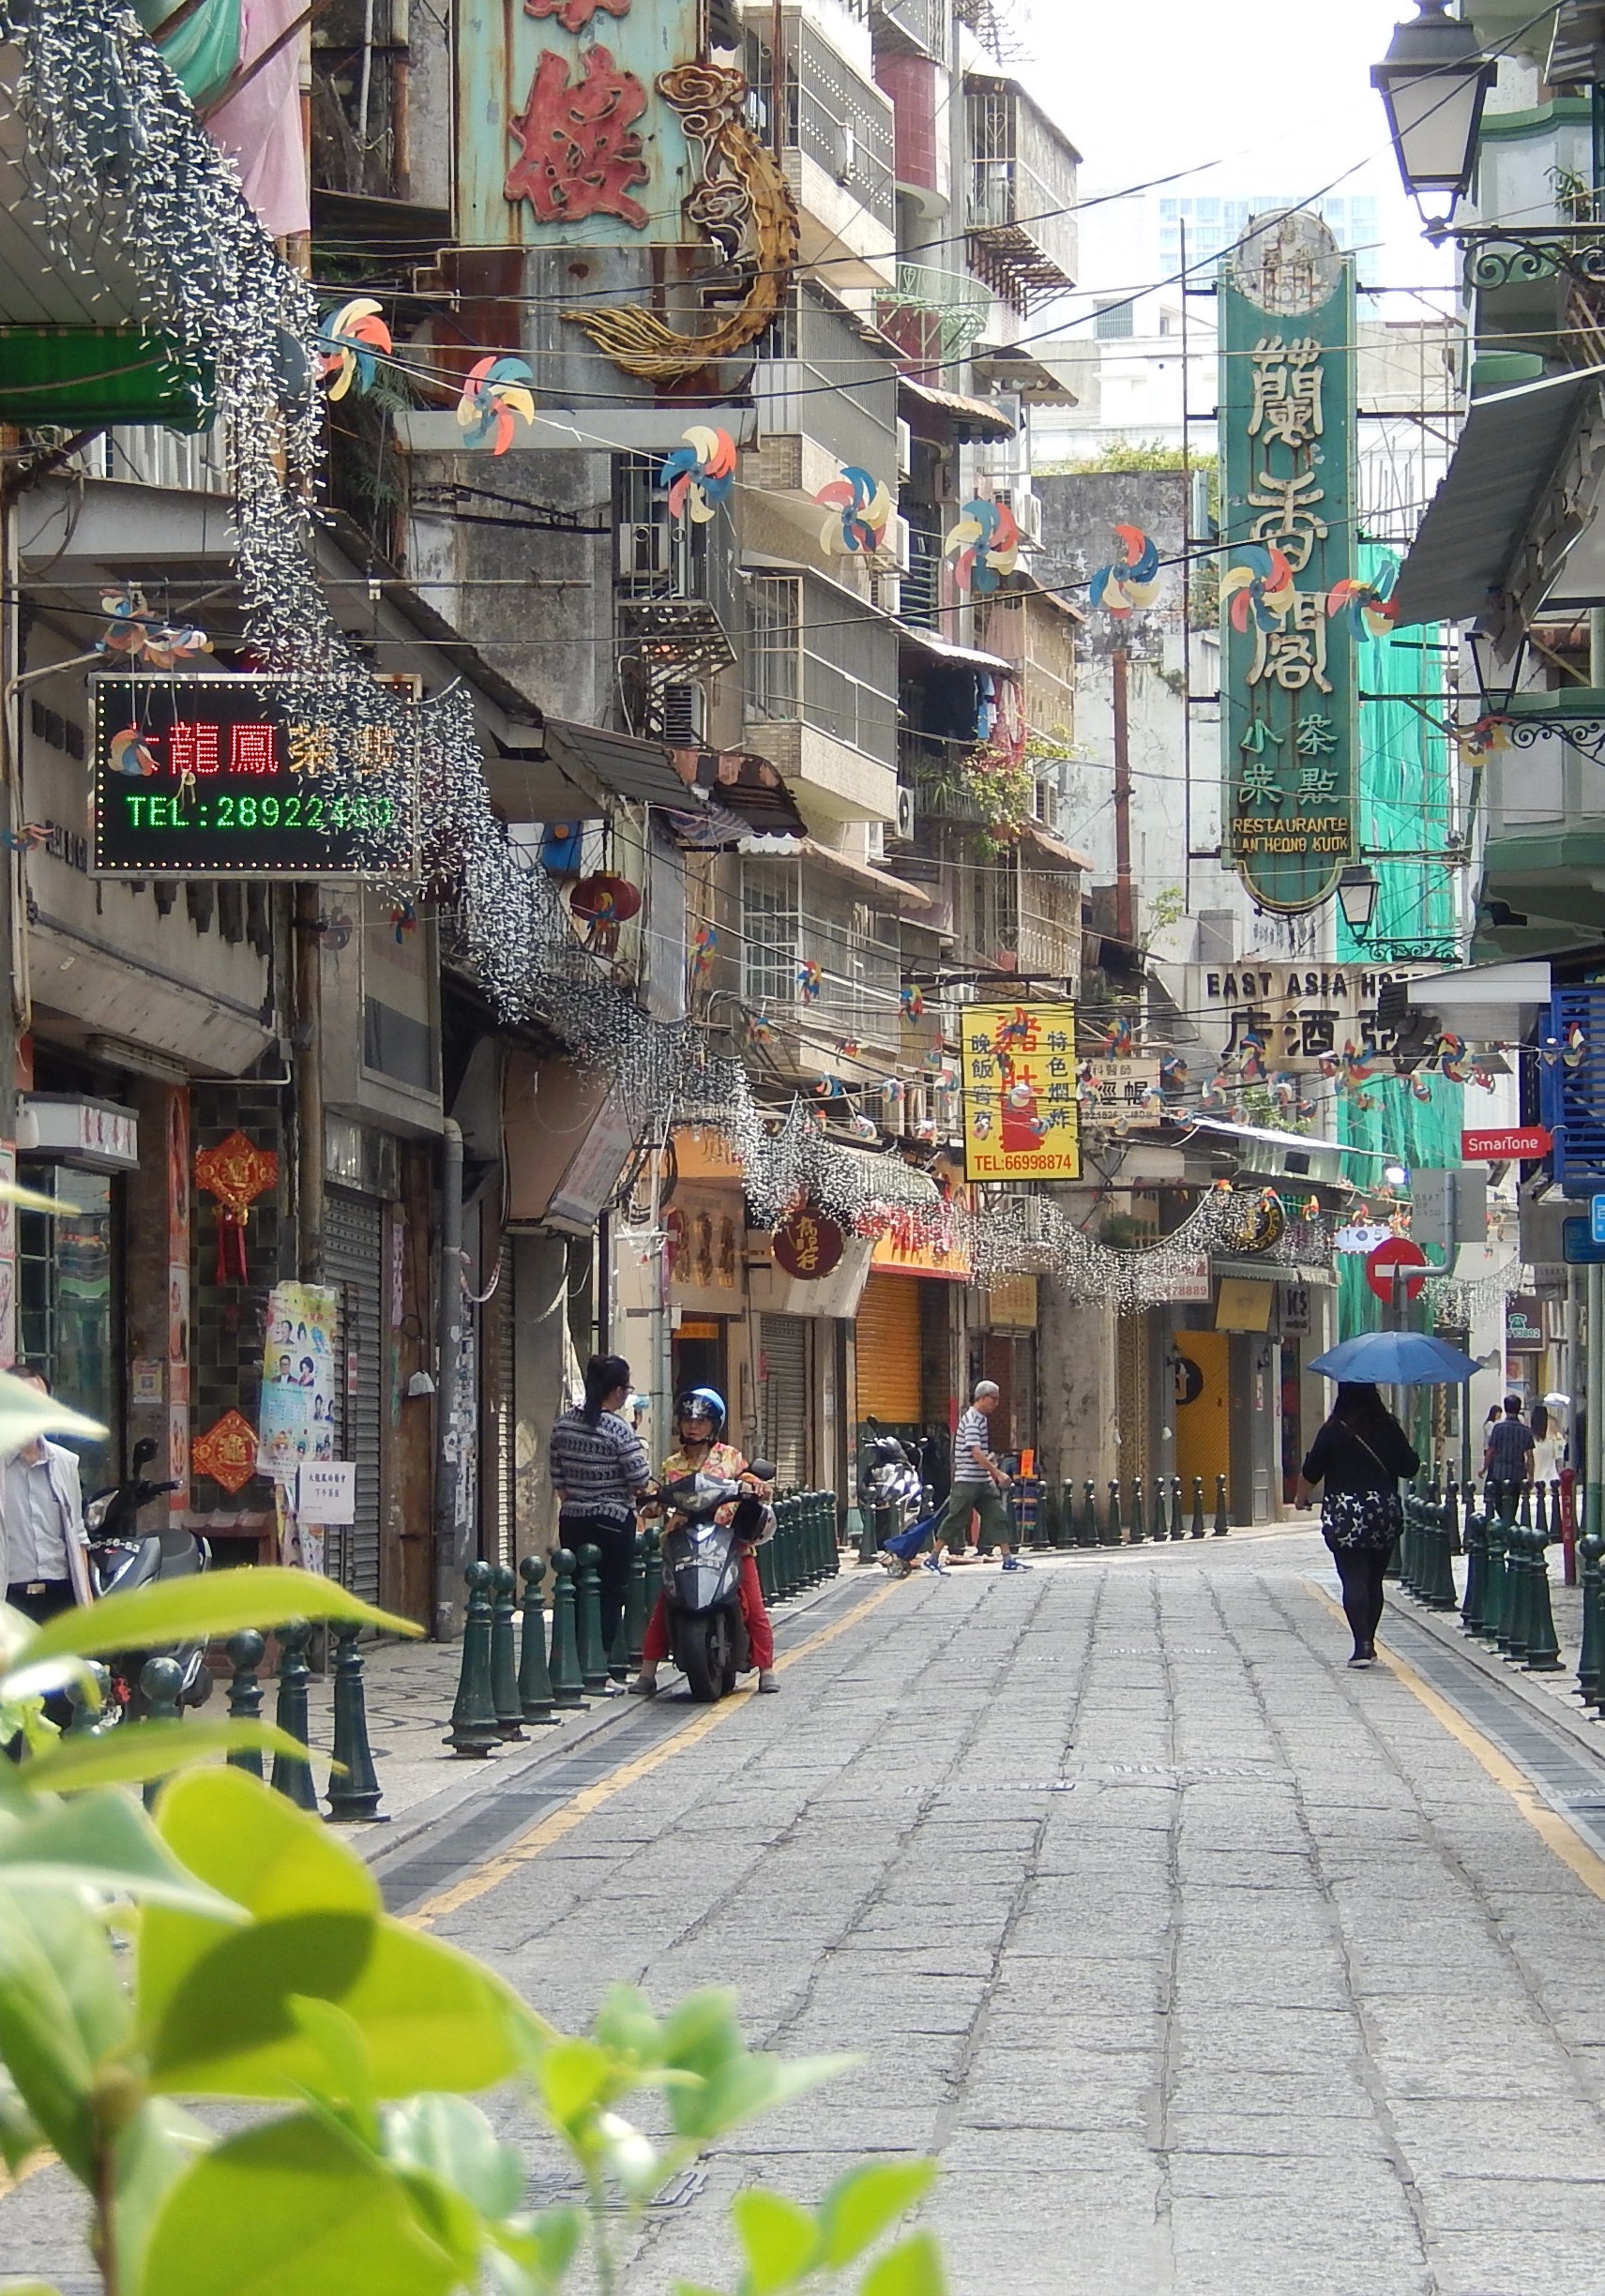 Macau back alley copy.jpg